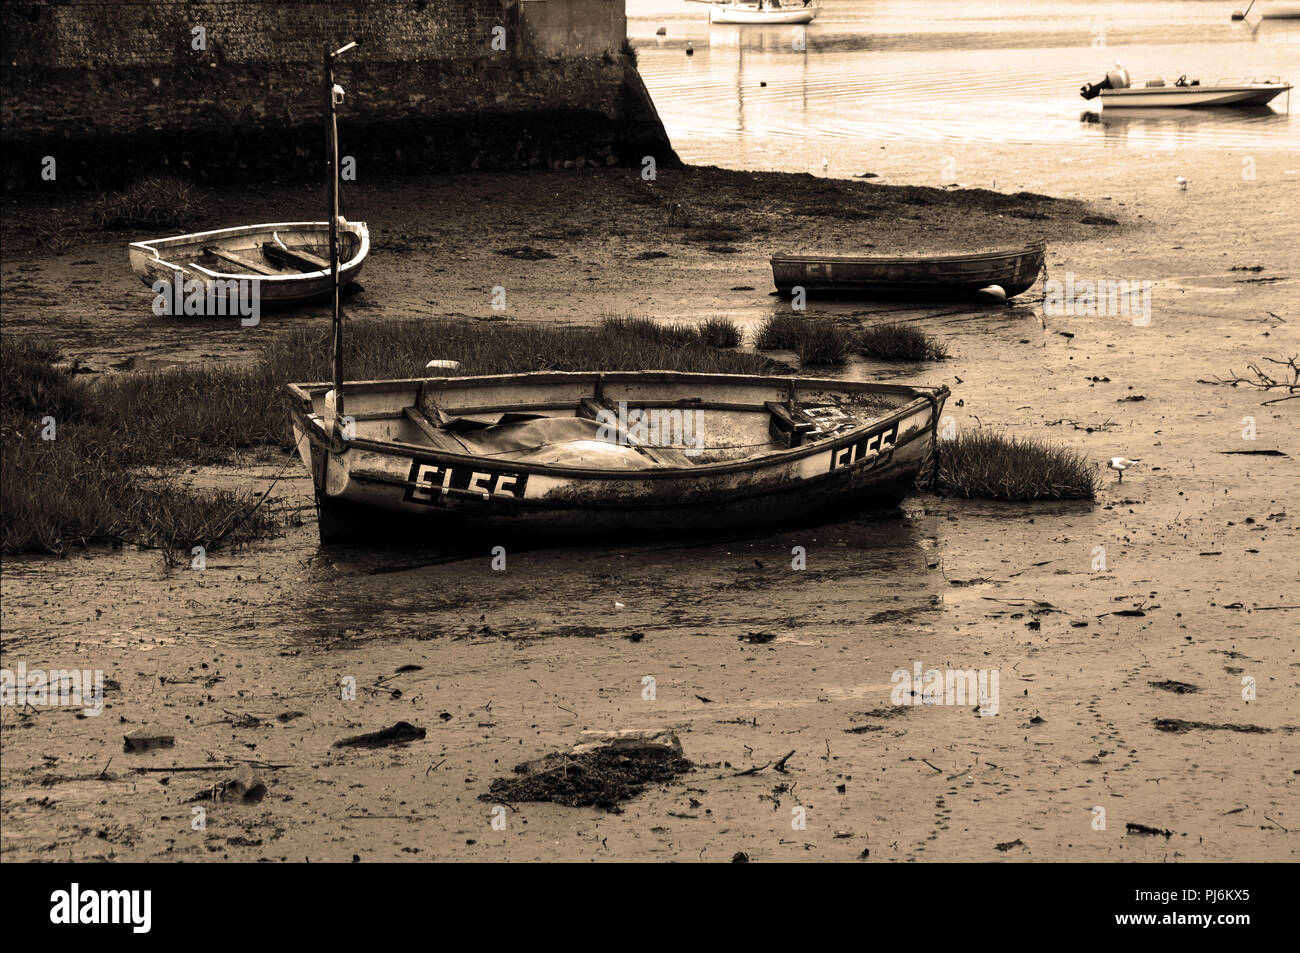 Rowing boats trapped at low tide on the River Exe, Devon, surrounded by mud, awaiting the returning tide. - Stock Image